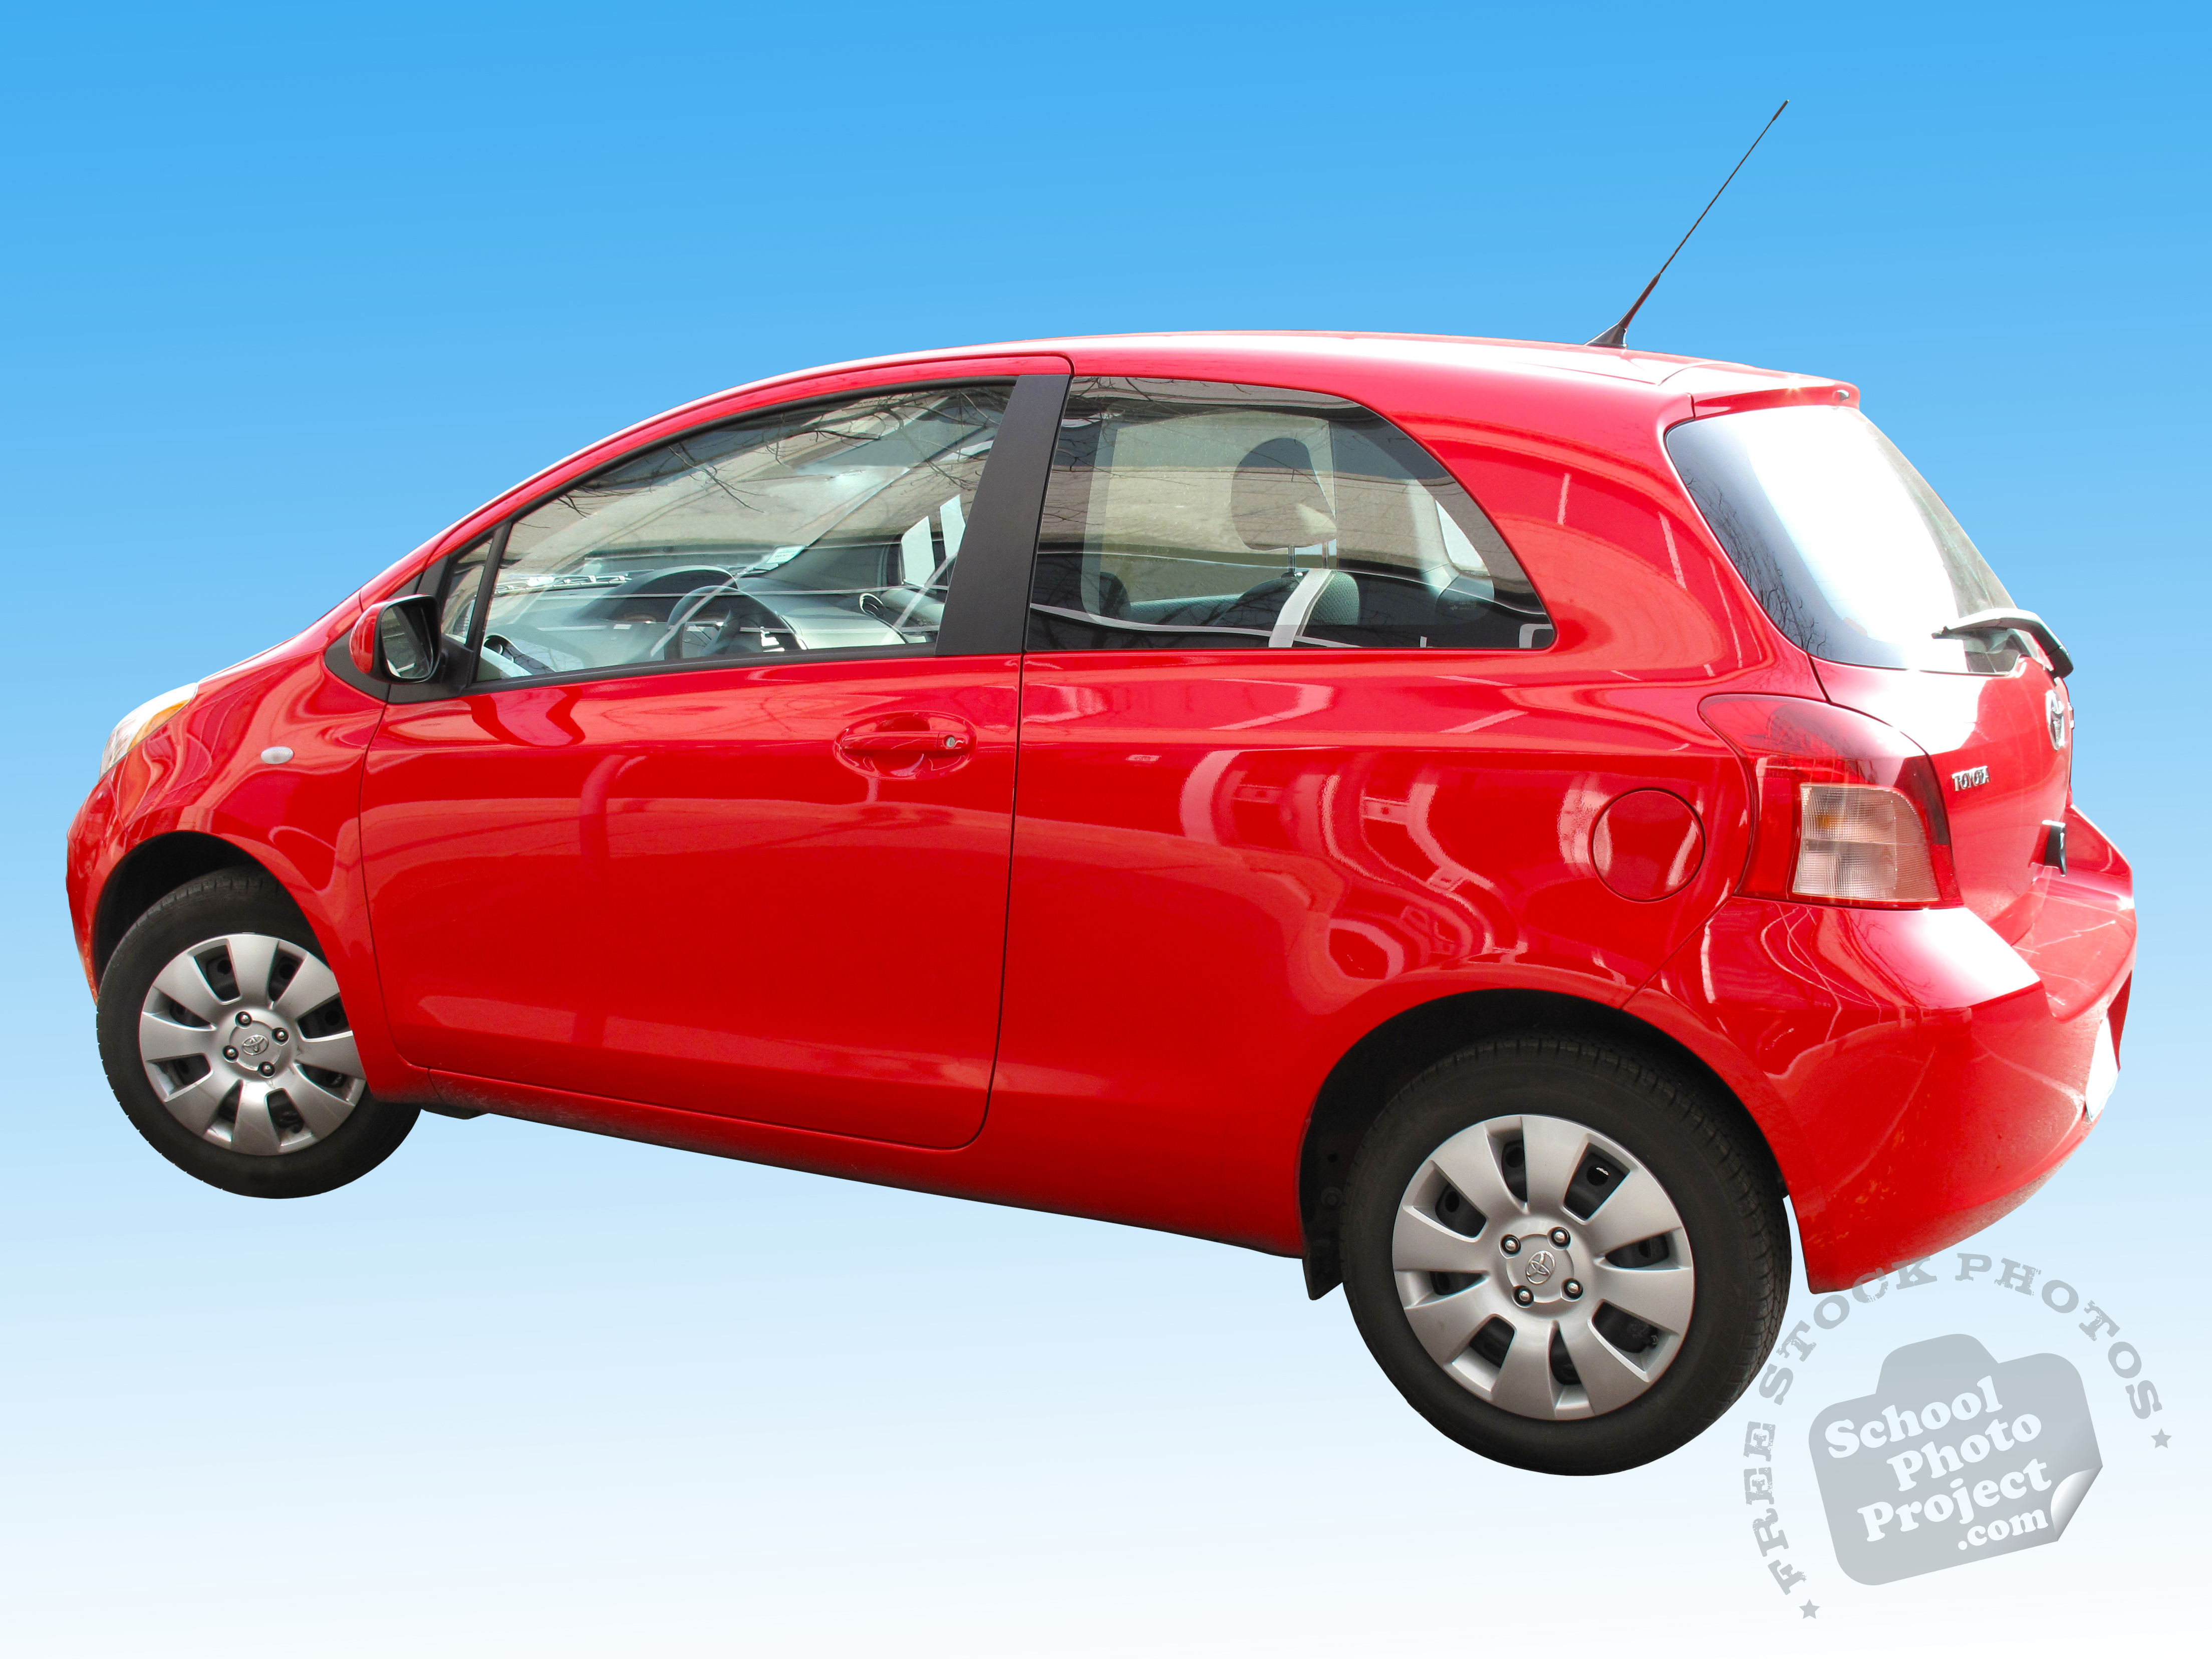 Toyota Yaris, FREE Stock Photo, Image, Picture: Red Toyota